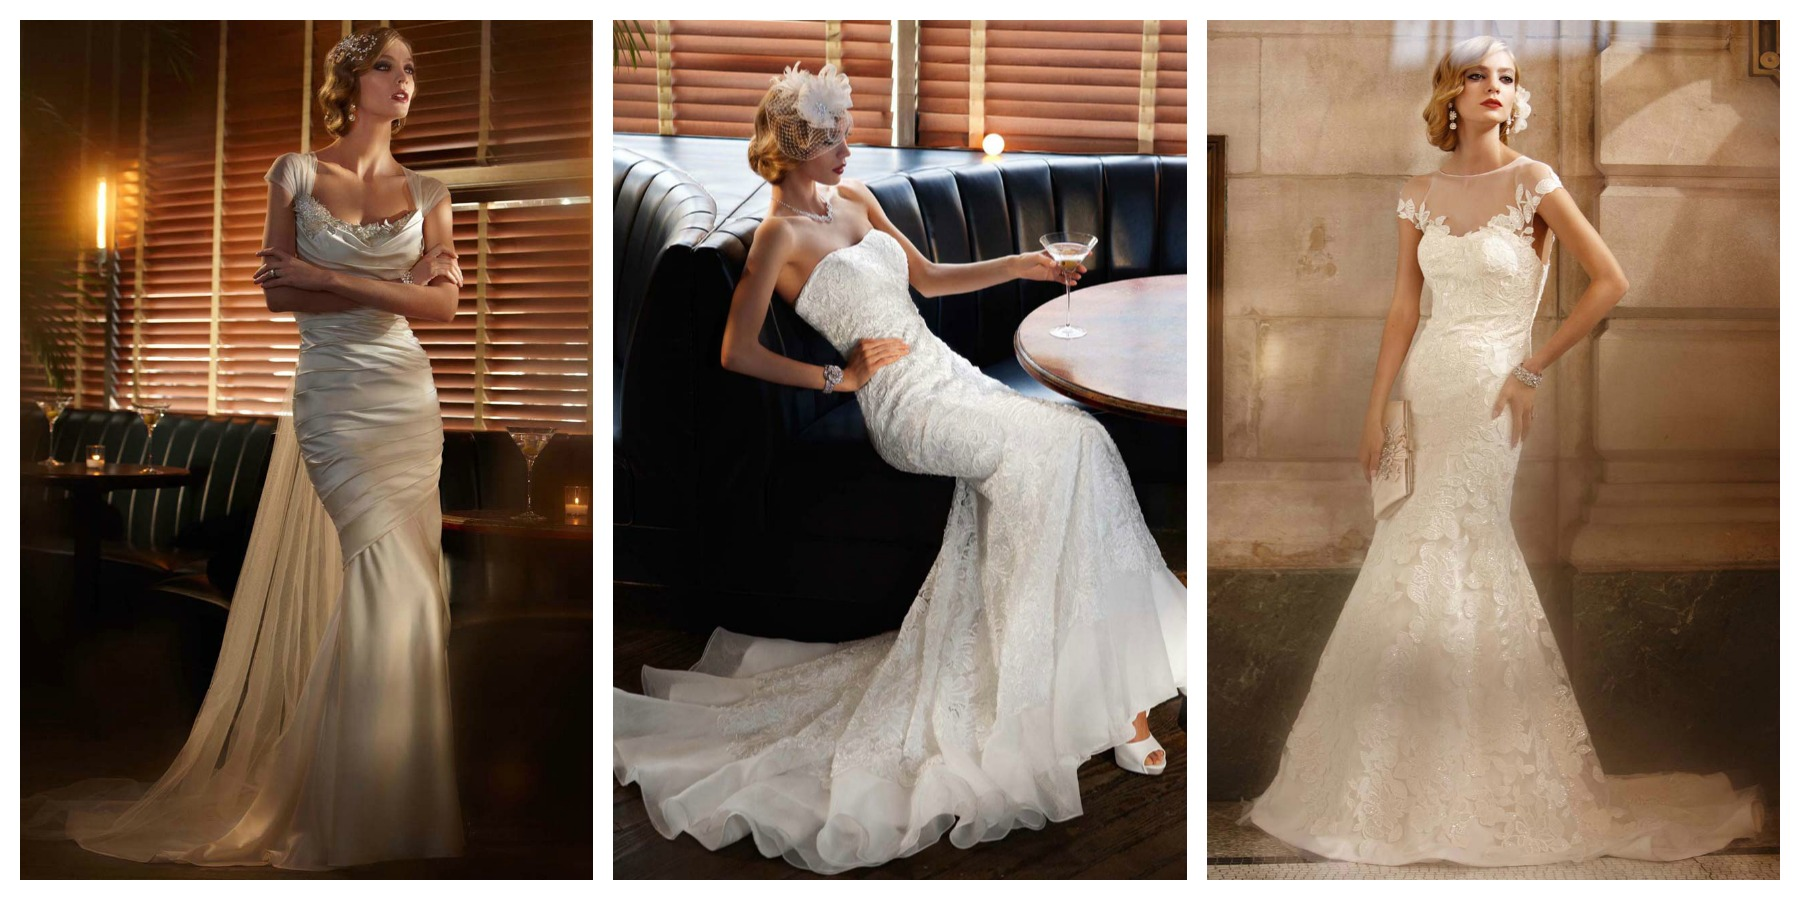 Jazz Age style wedding gowns from David's Bridal.